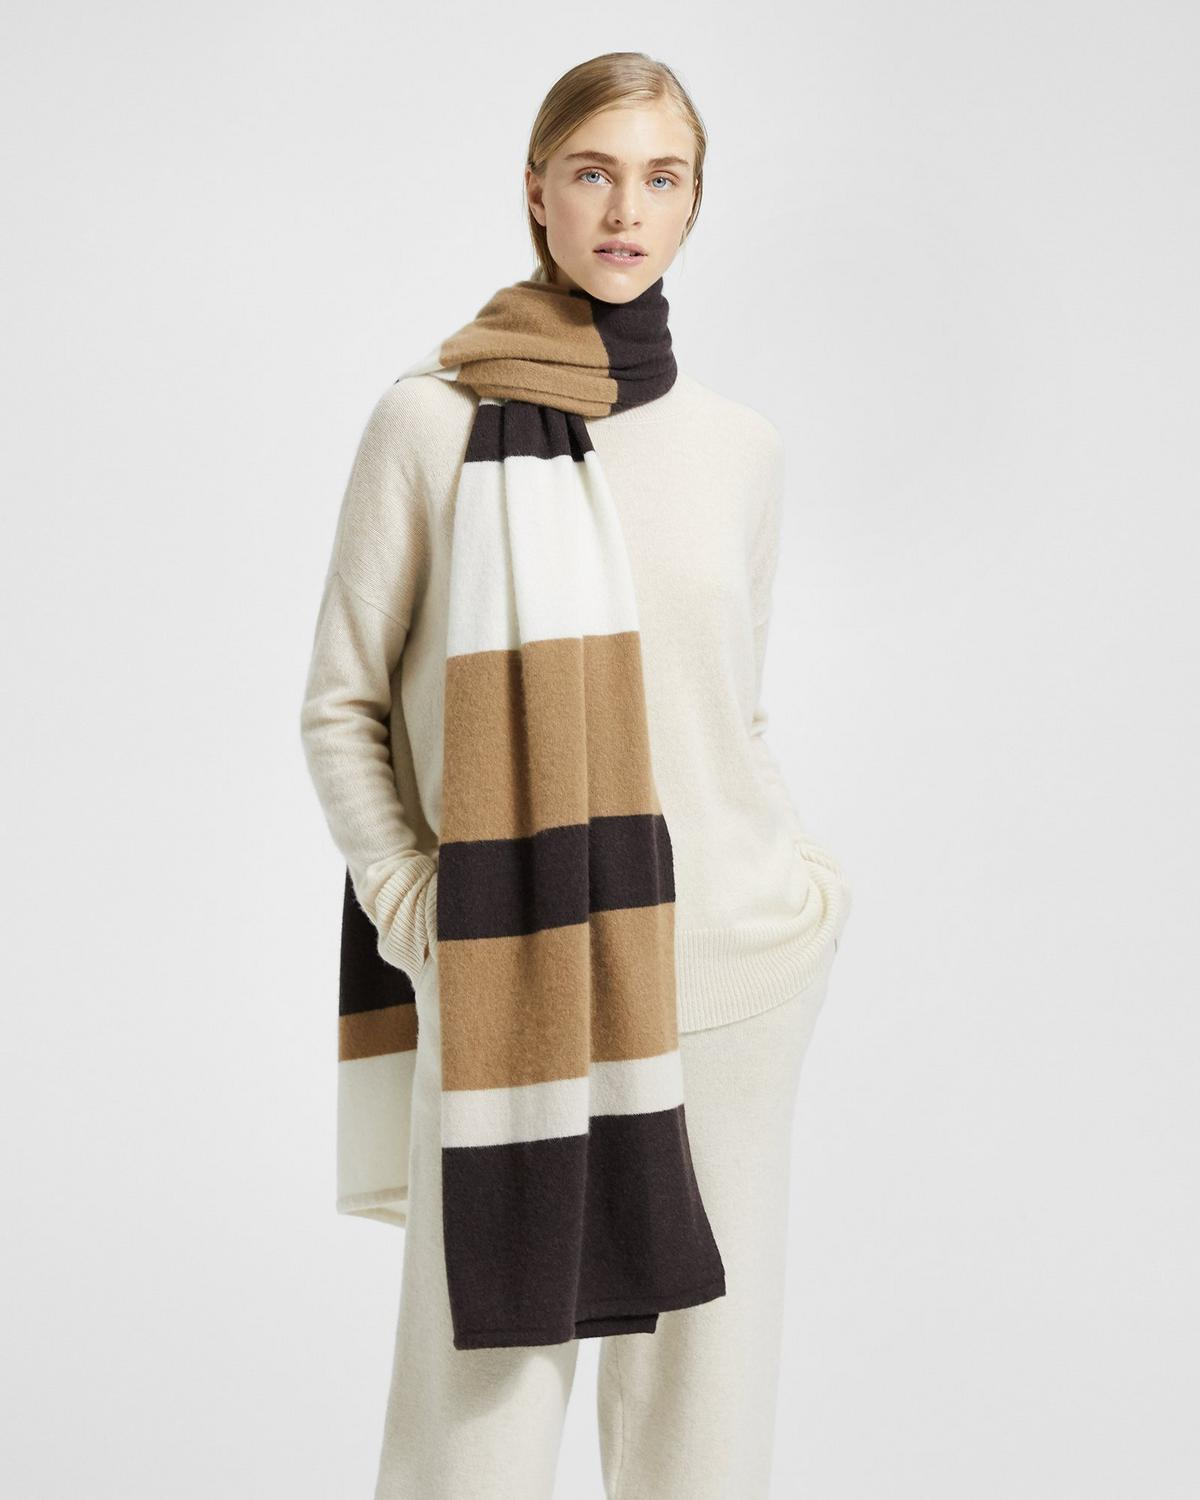 Cashmere Striped Blanket Scarf 0 - click to view larger image 5575d1301